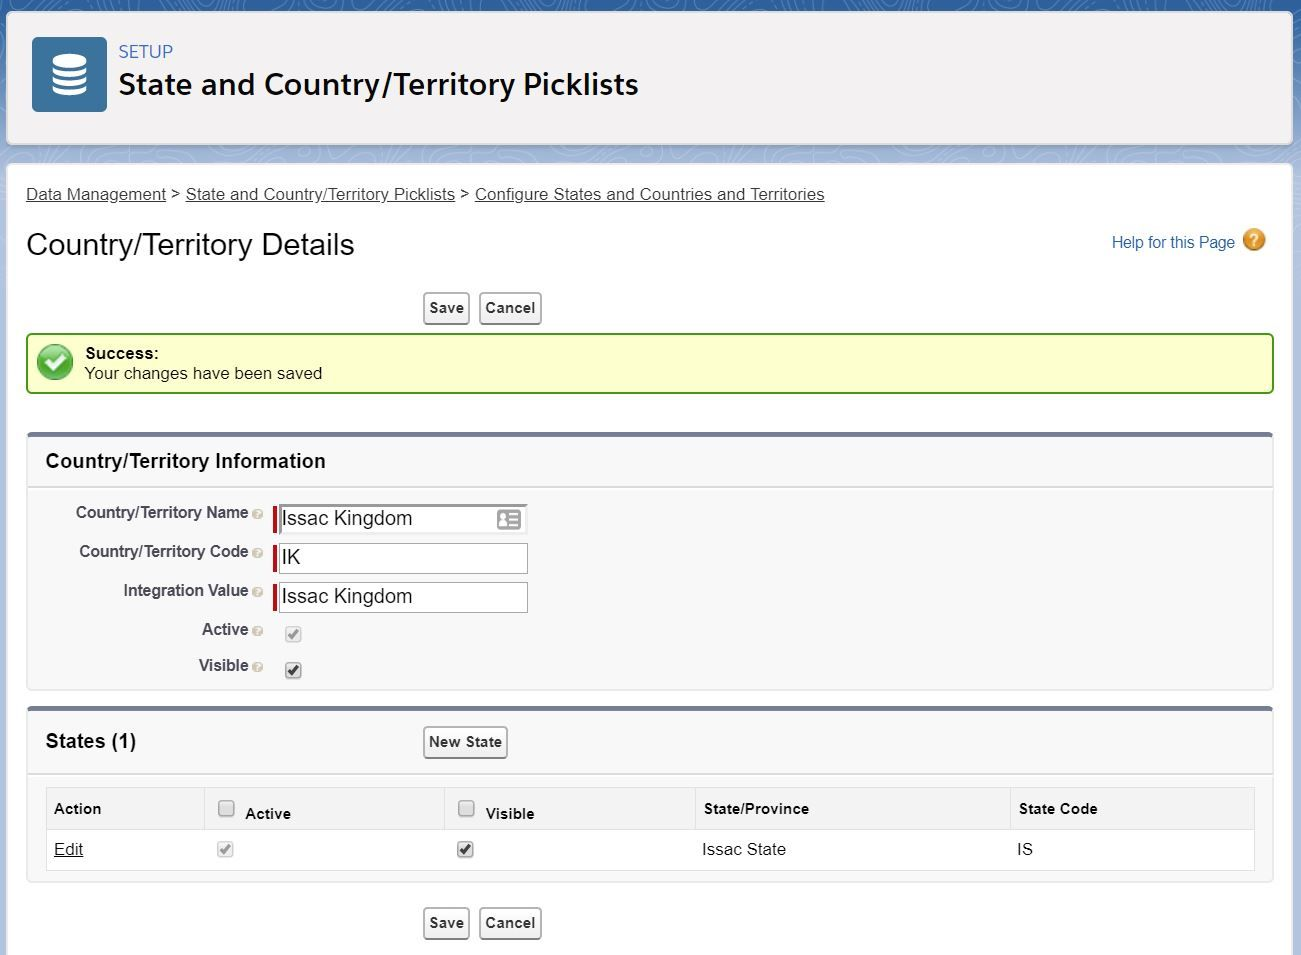 state-and-country-territory-picklist-configure-add-new-state-step-1